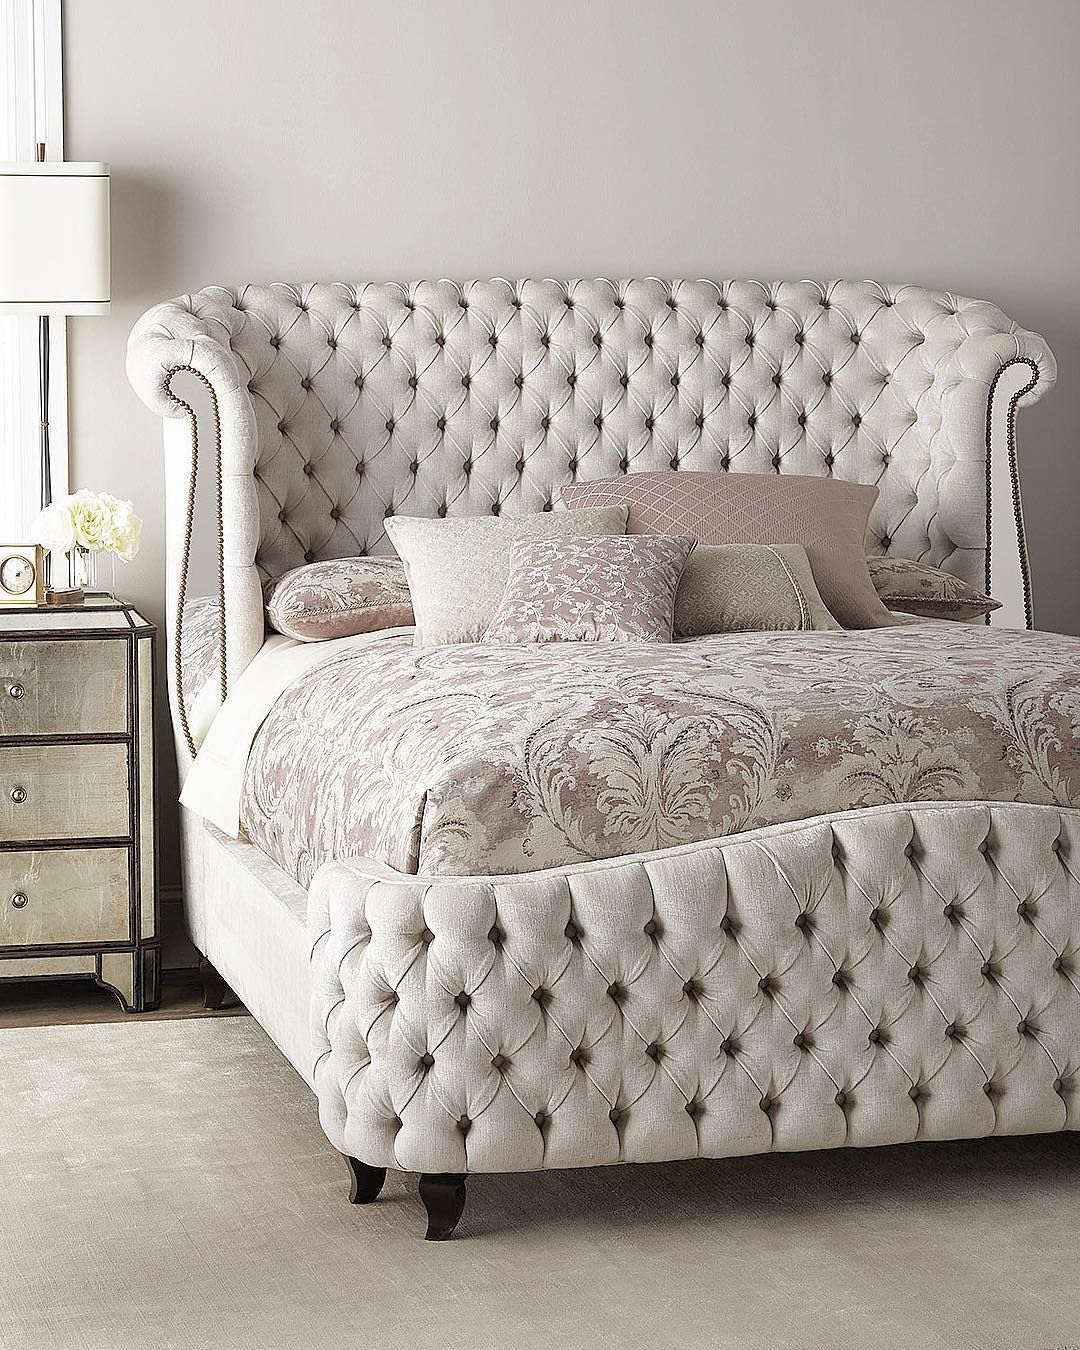 new savannah tufted bed with antique